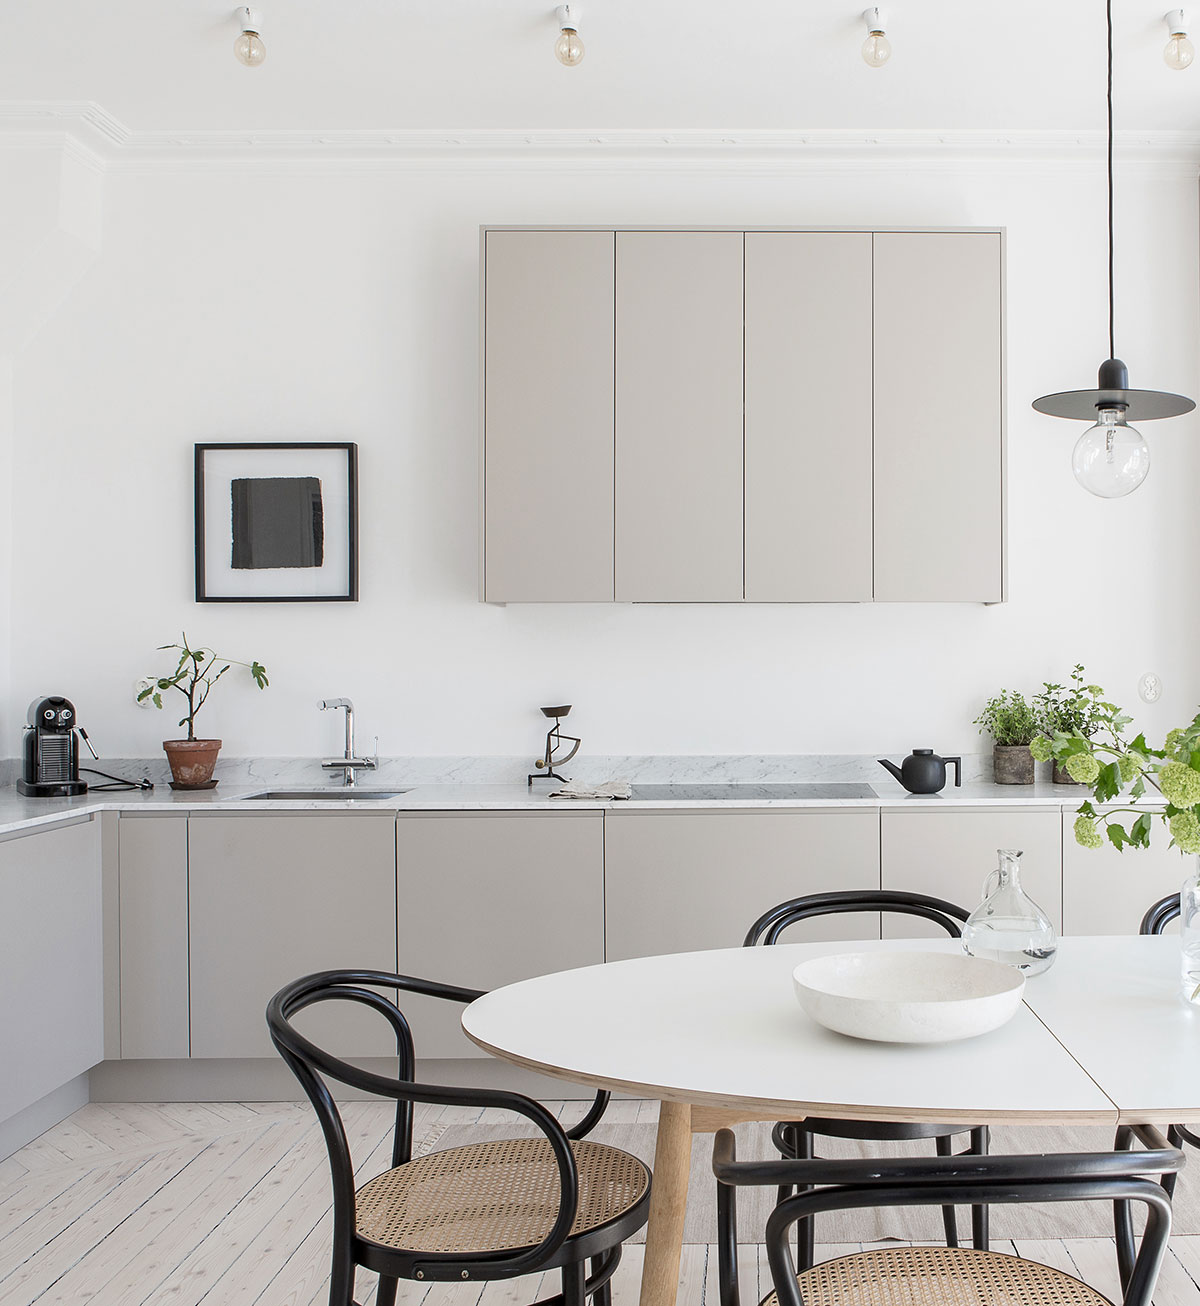 Minimalist grey kitchen inspiration with white marble countertop